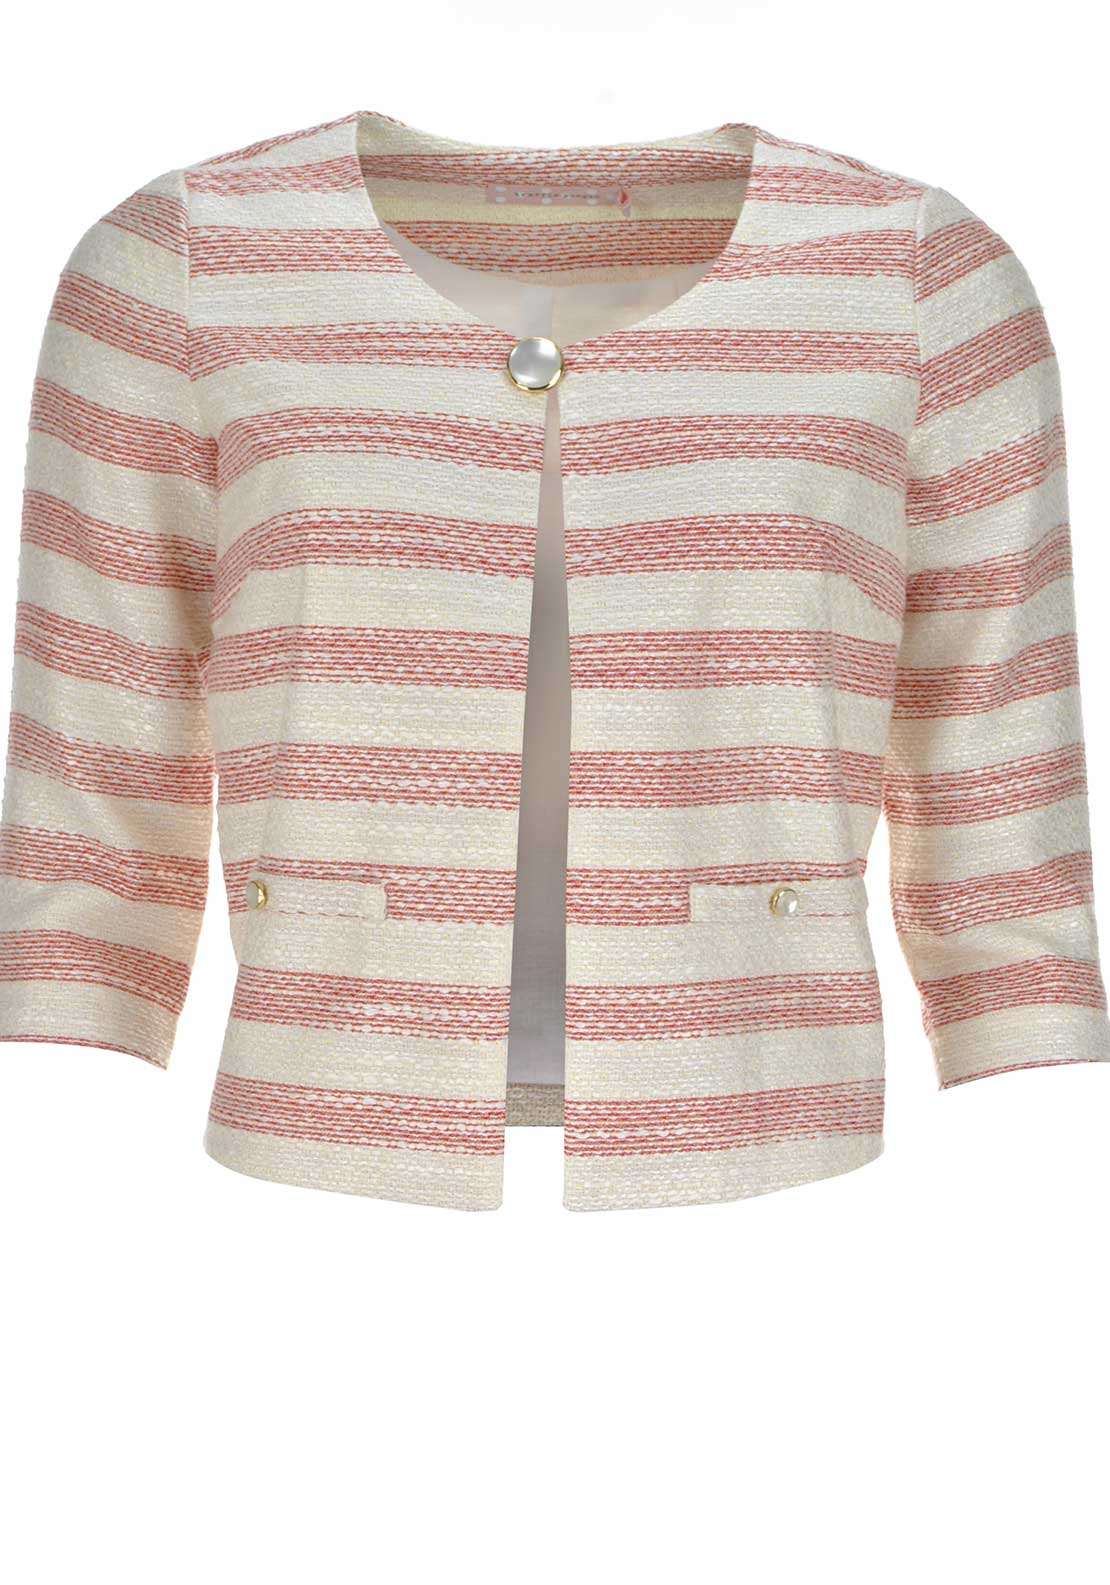 Traffic People Woven Striped Short Jacket, Cream and Red